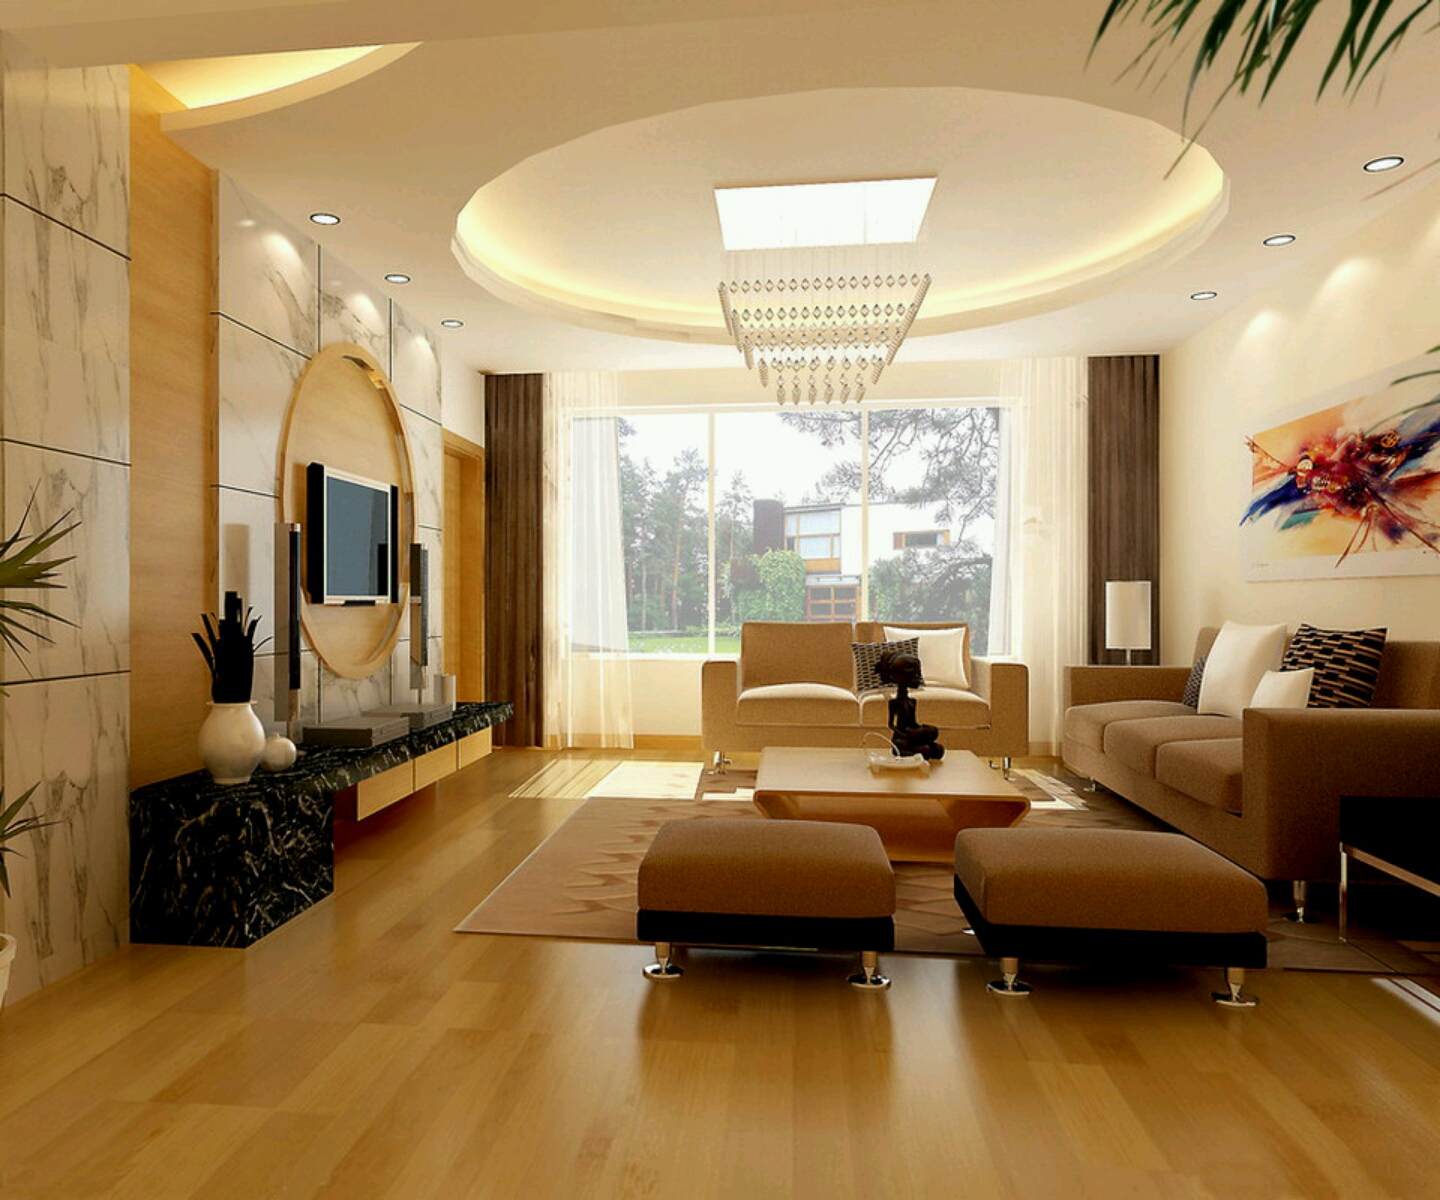 Modern interior decoration living rooms ceiling designs for New room decoration ideas